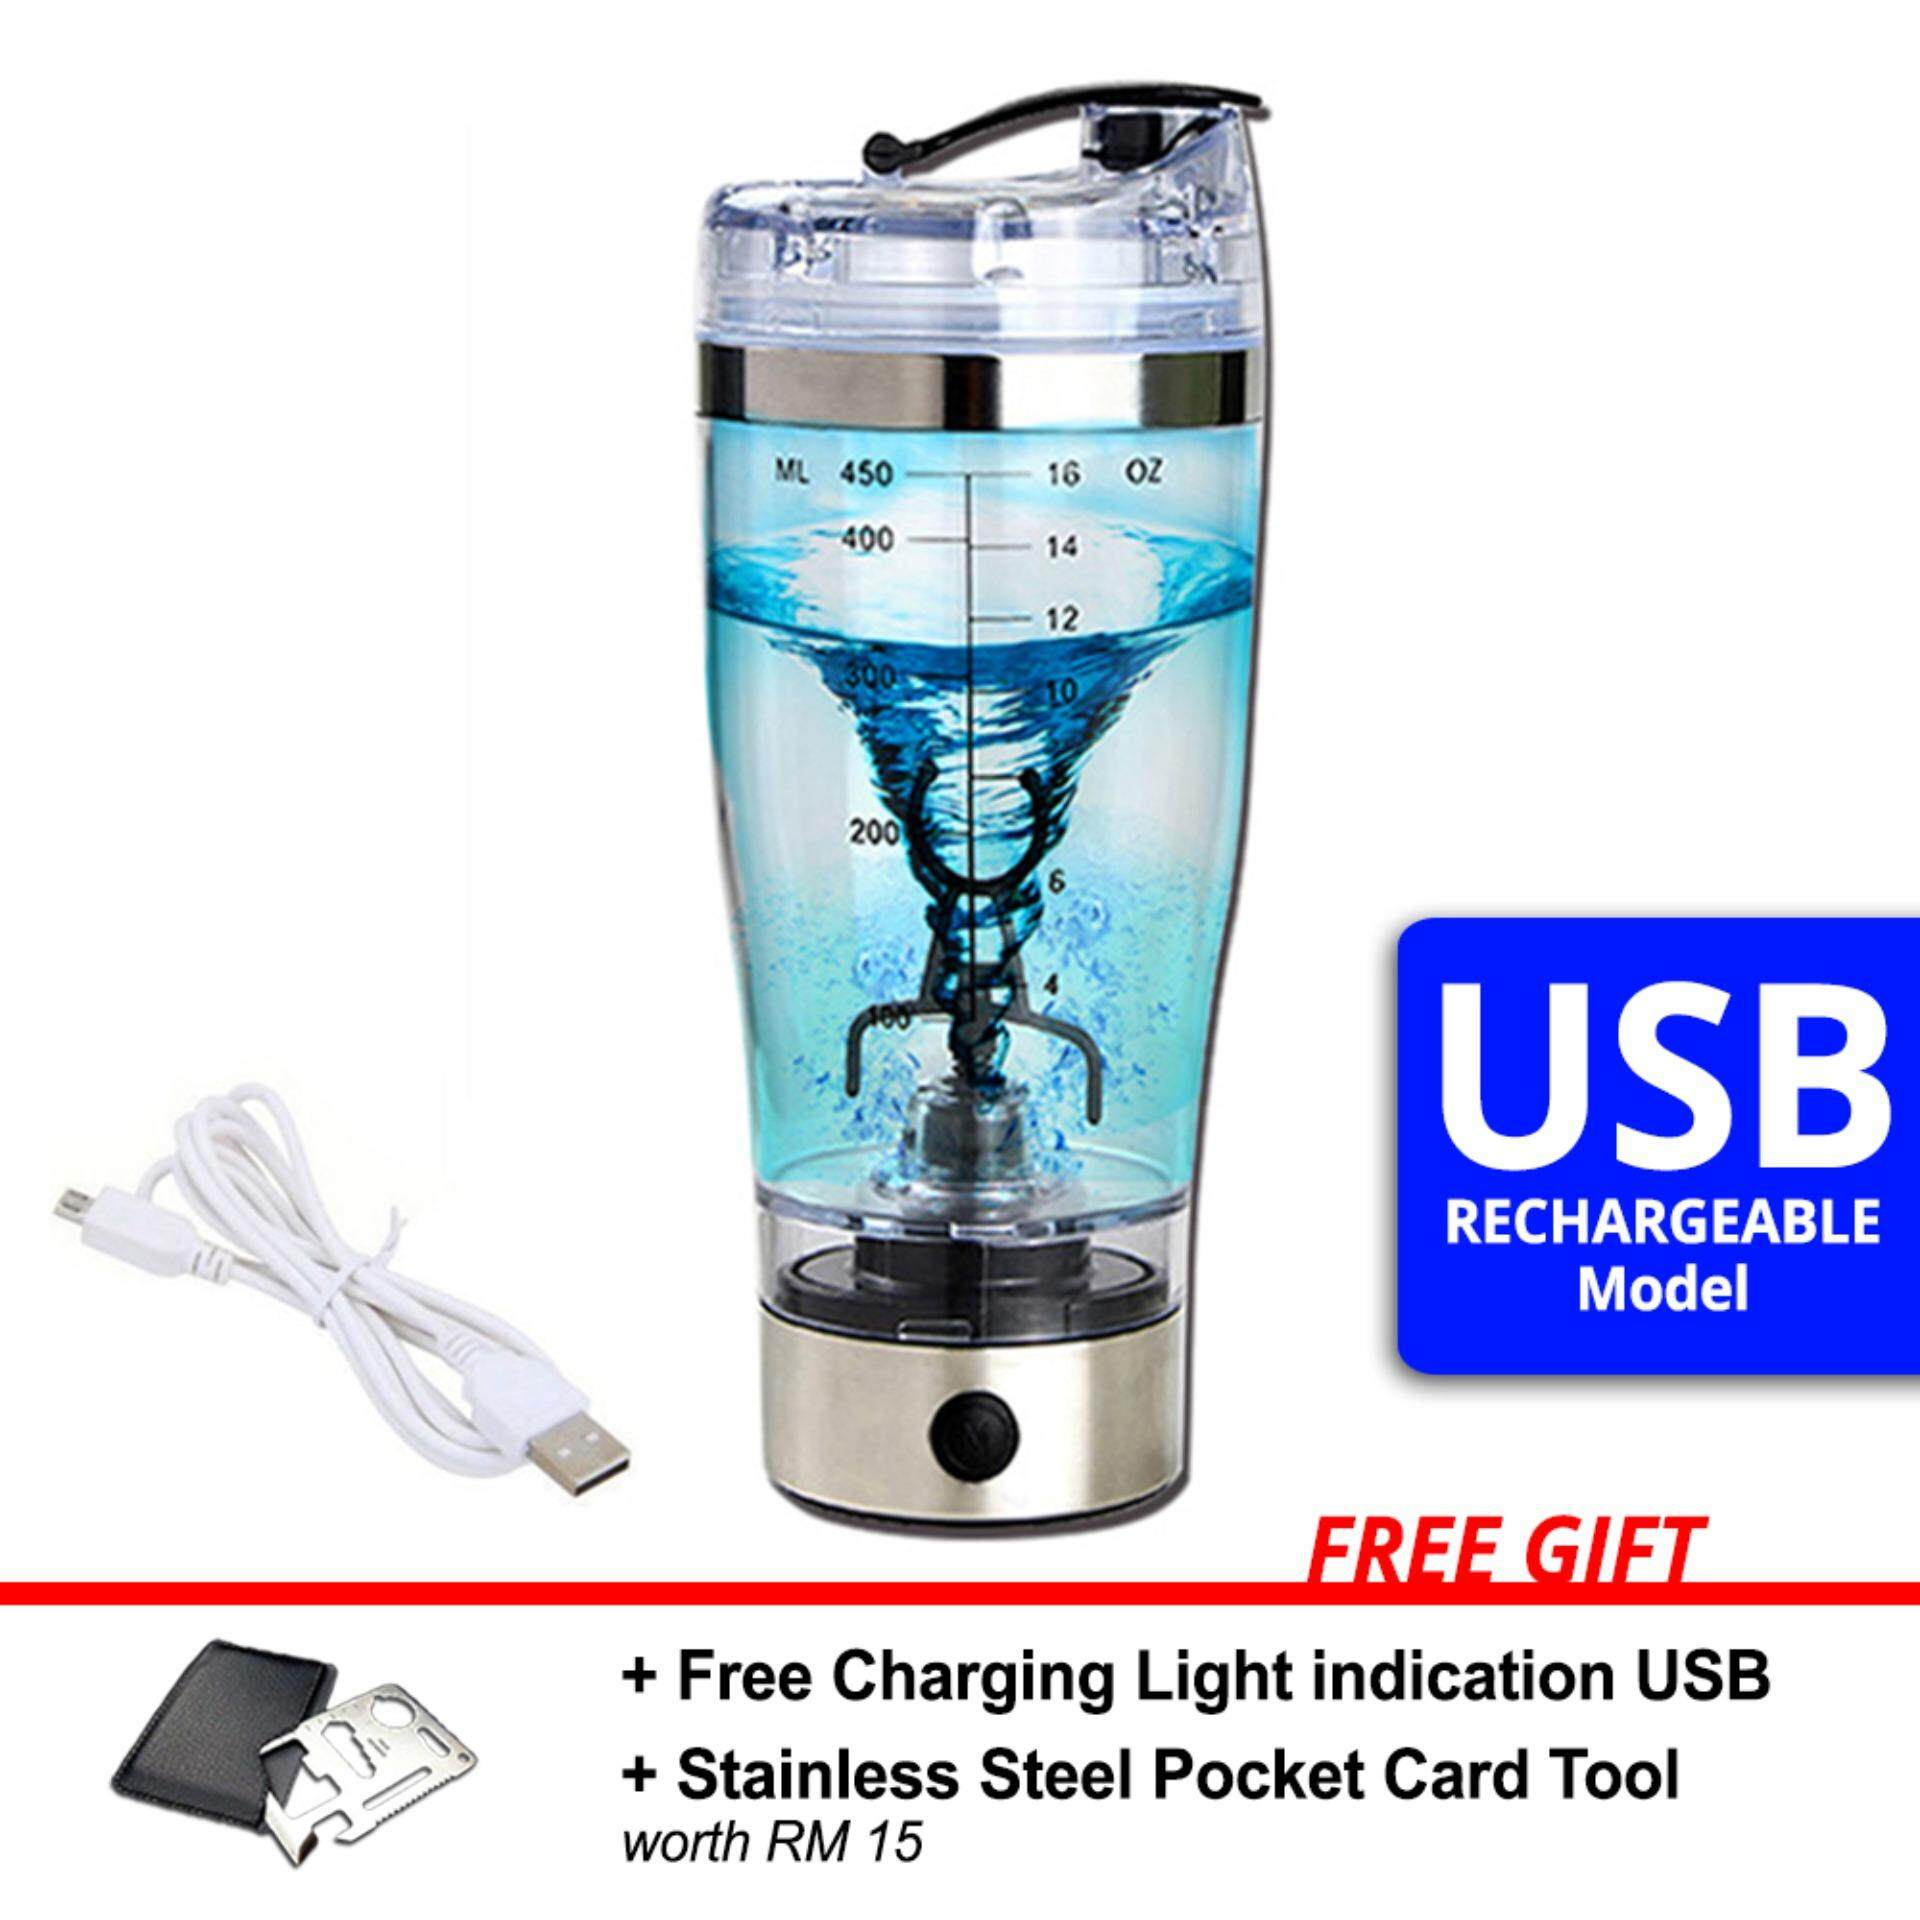 USB Rechargeable Portable Creative Auto Electric Protein Blender Shaker Bottle +Free Gift - MI2961